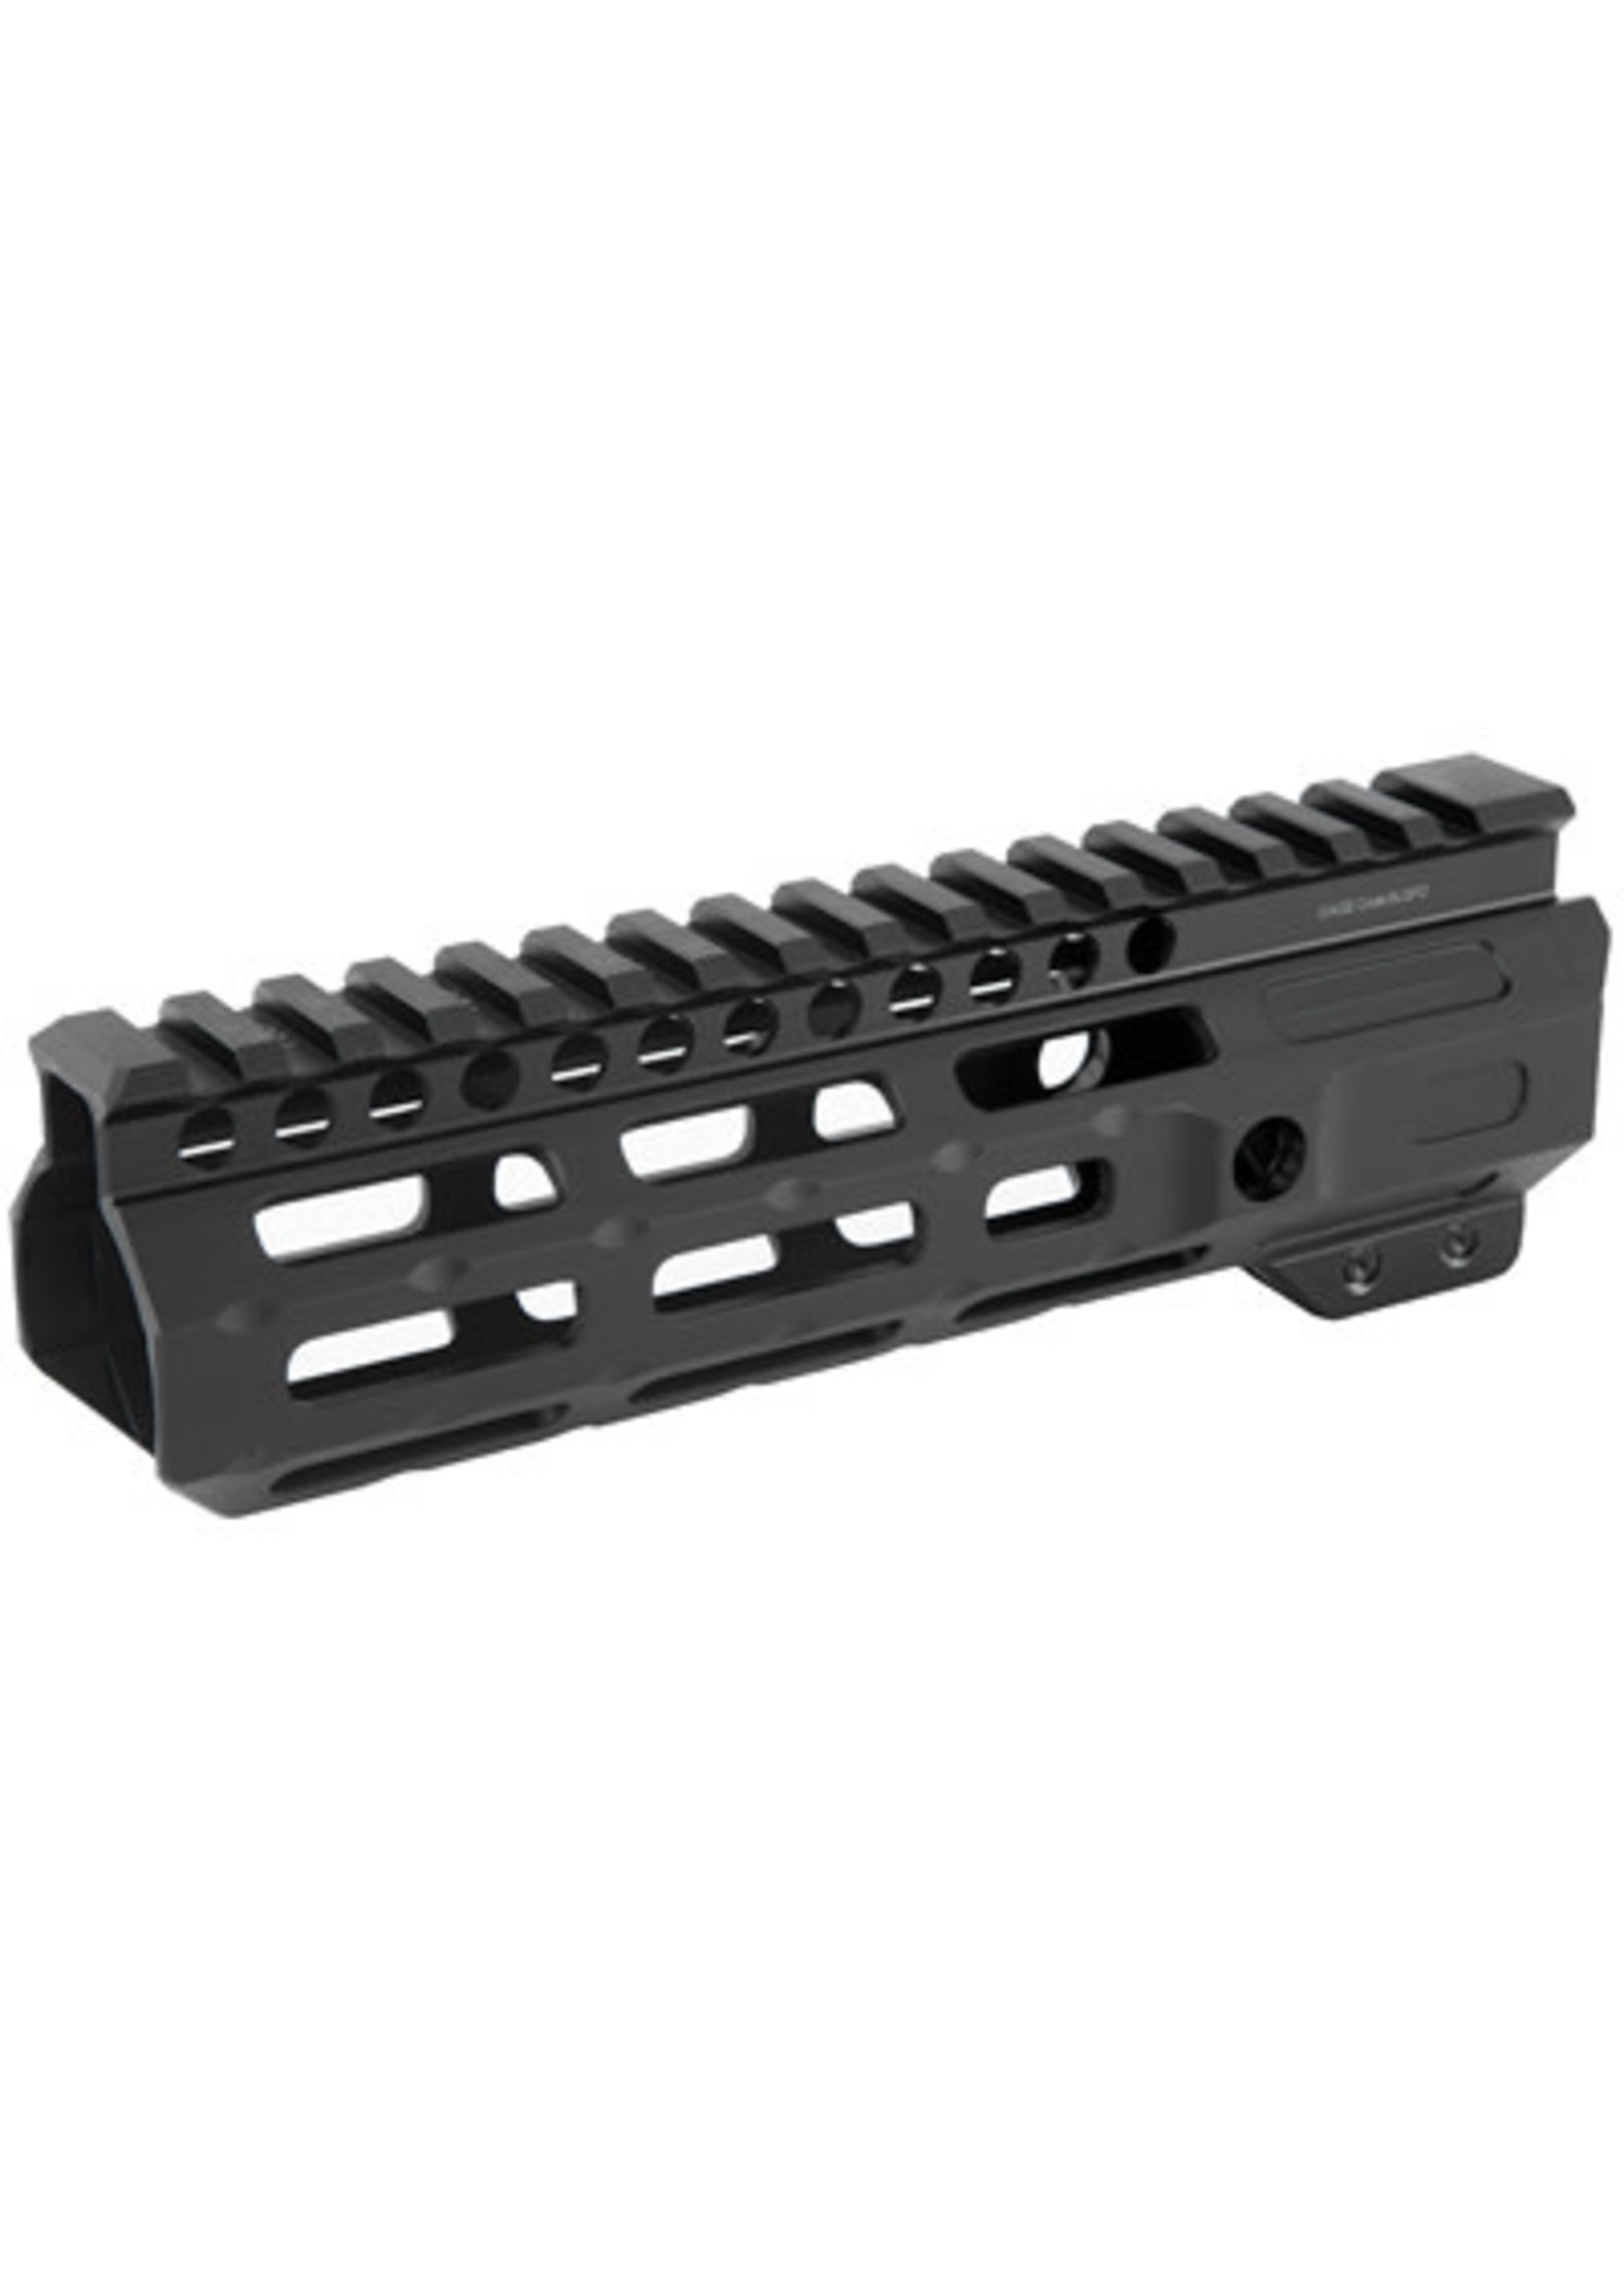 """Midwest Industries Midwest Industries, Combat Rail M-LOK, Handguard, Fits AR-15 Rifles, 7"""" Wrench Included, Black"""